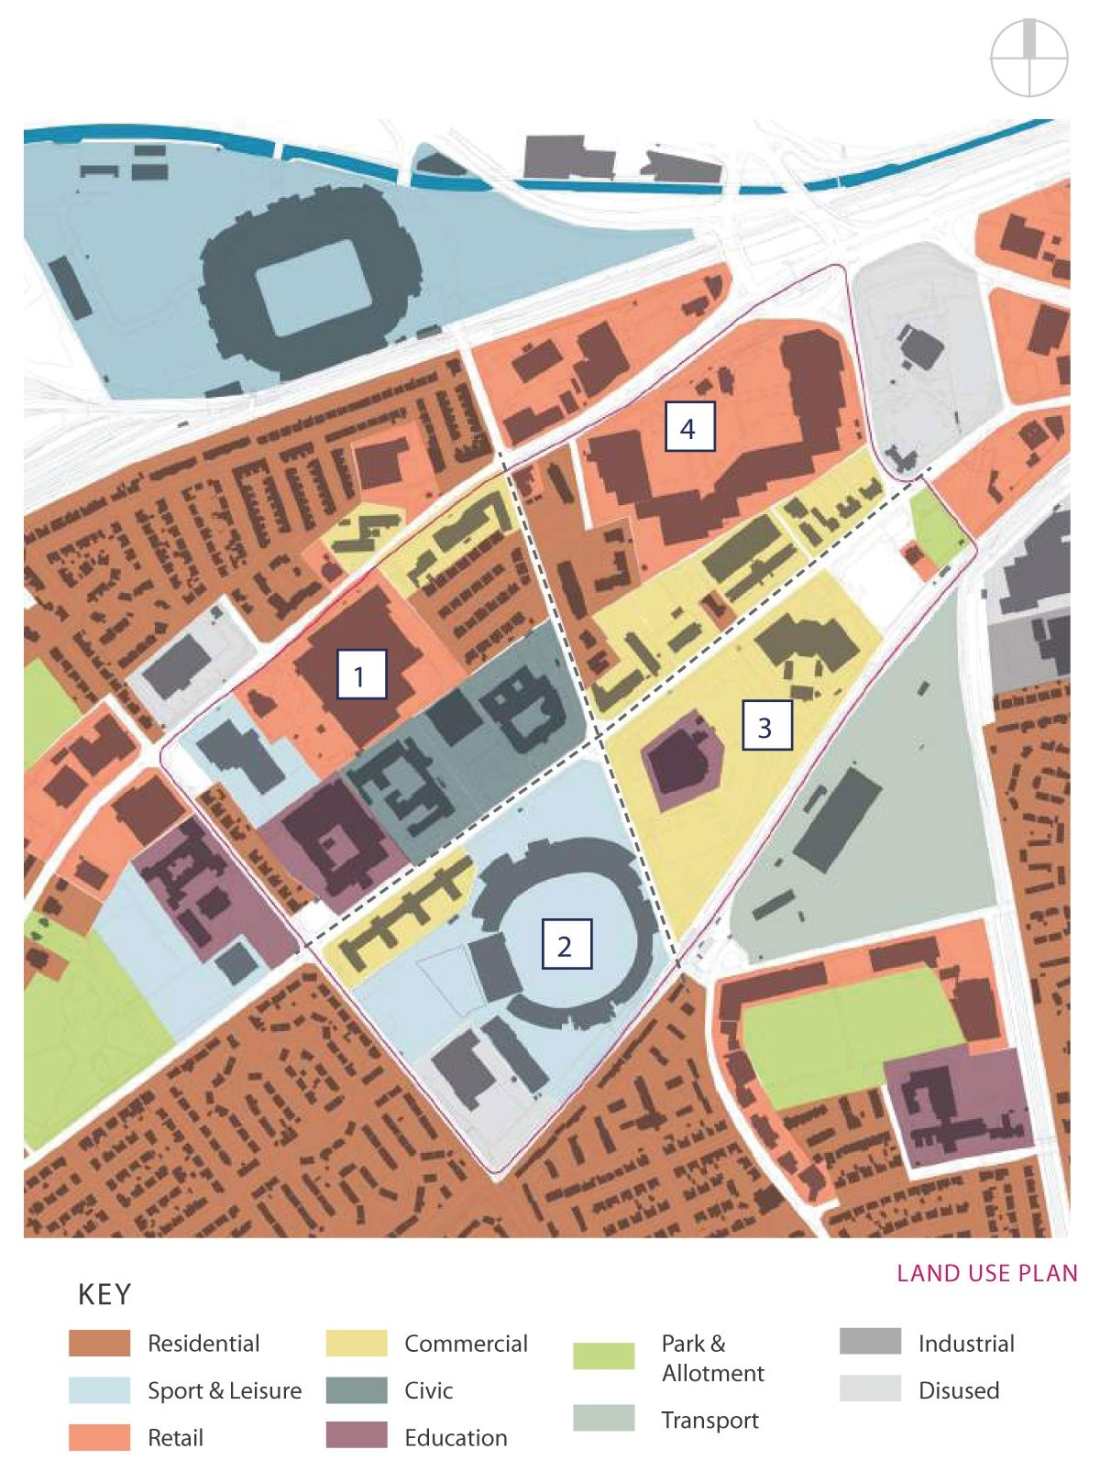 cqm-appendix-1-civic-quarter-masterplan-consultation-draft-7.jpg